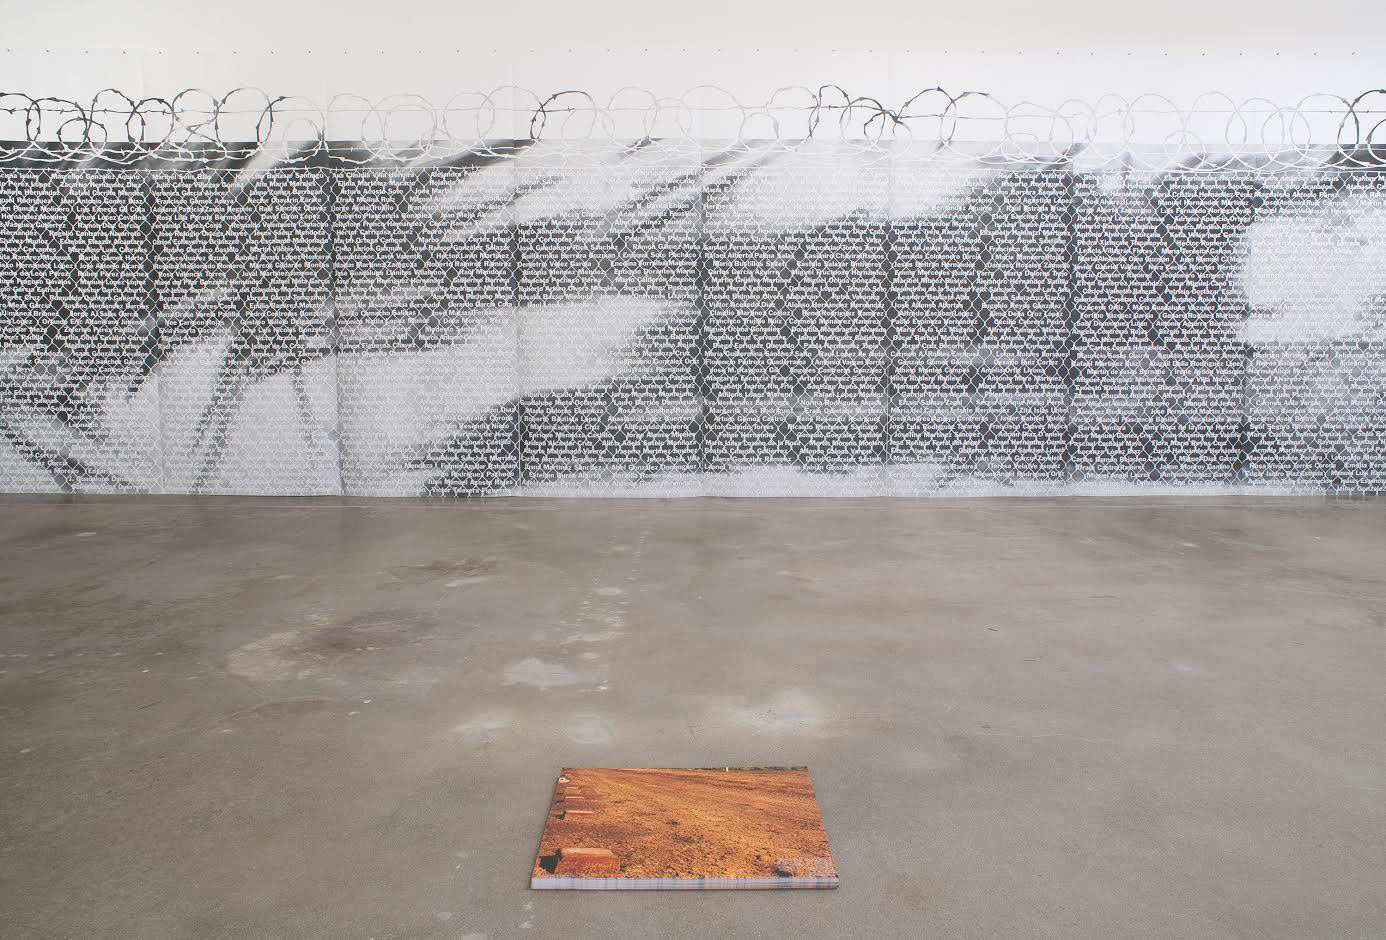 Andrea Bowers, <em>No Olvidado - Not Forgotten</em>, 2010. Graphite on paper, 23 drawings, 50 x 120 in. each. Photos: Robert Wedemeyer. All images courtesy Susanne Vielmetter Los Angeles Projects.